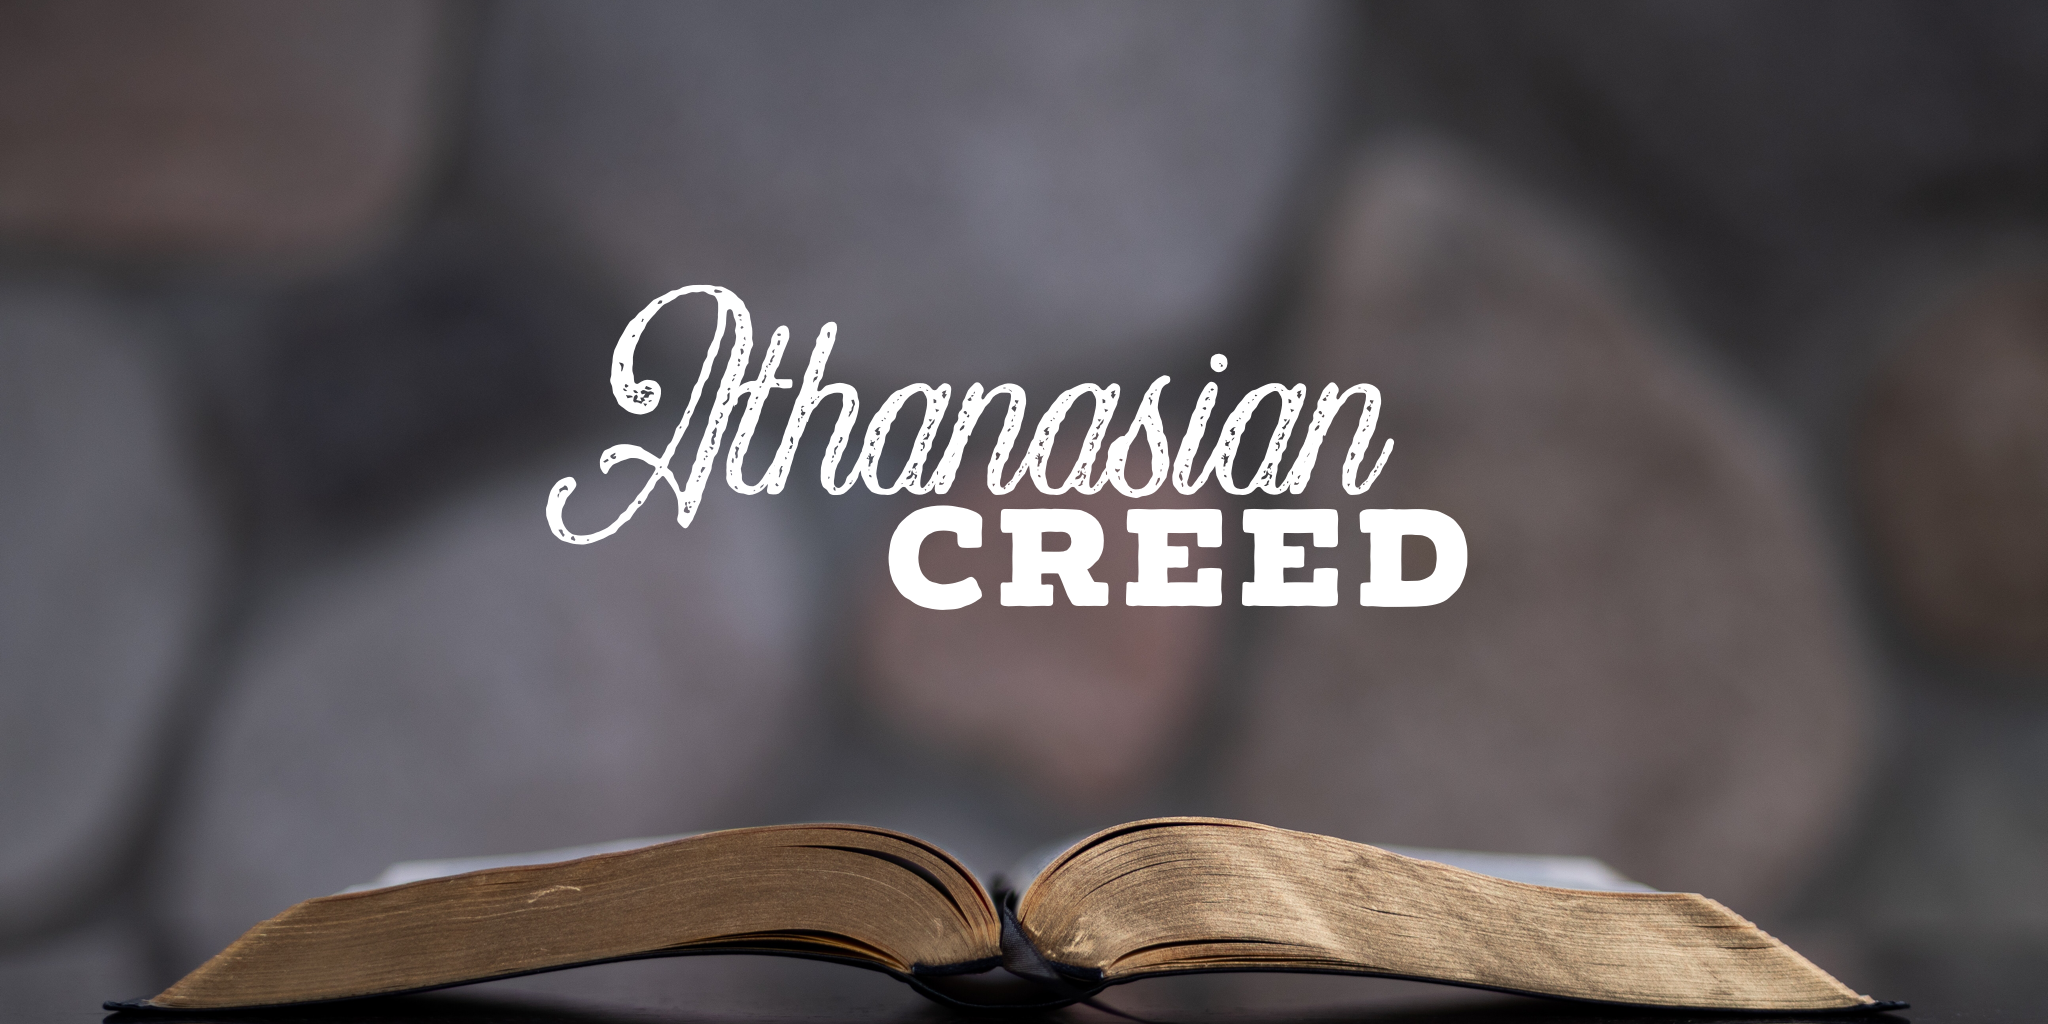 Athanasian Creed